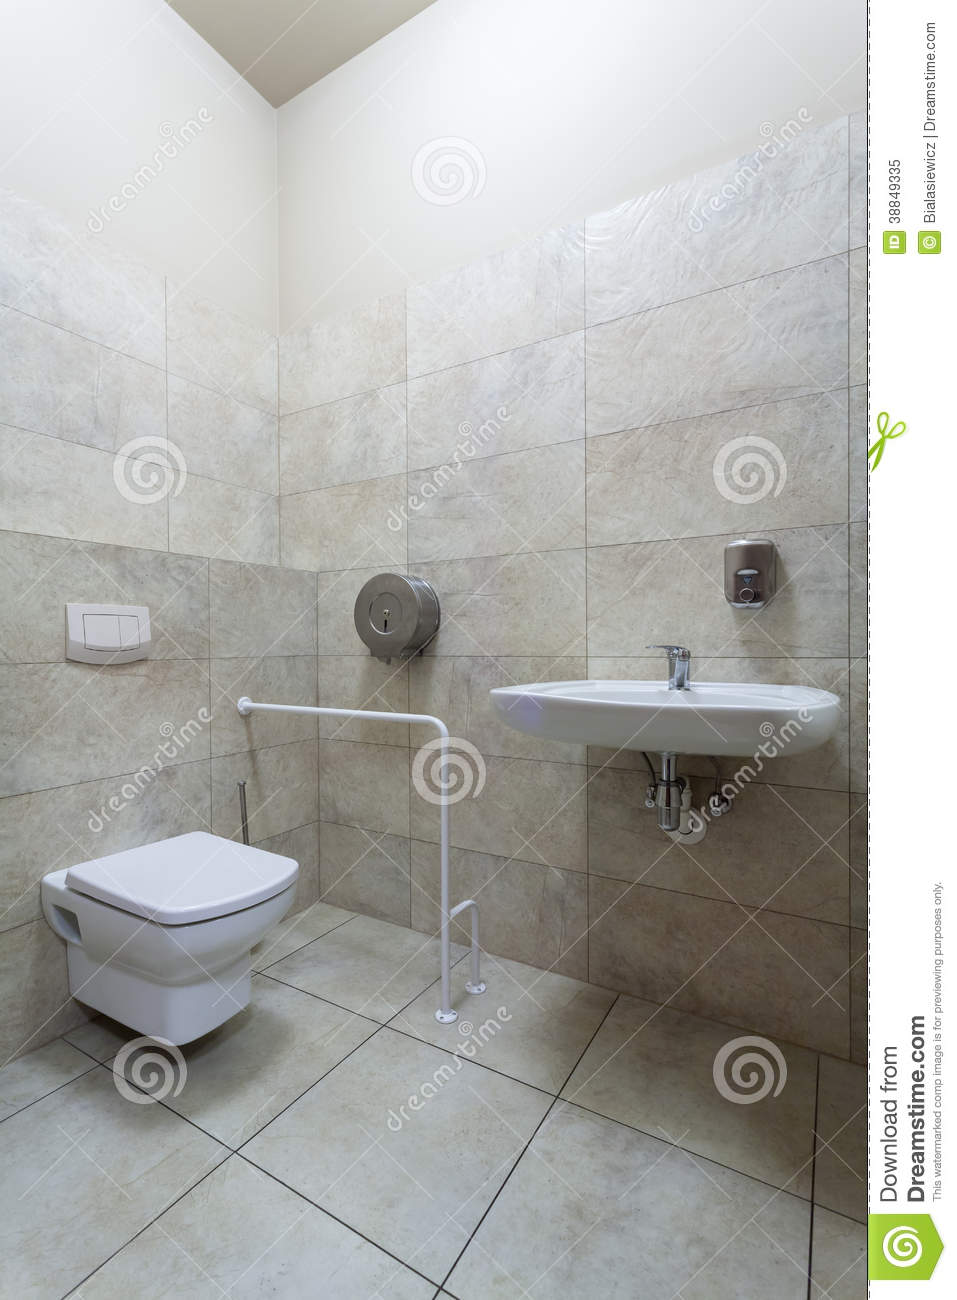 Toilet for disabled stock photo image 38849335 - Toilet for handicapped person ...